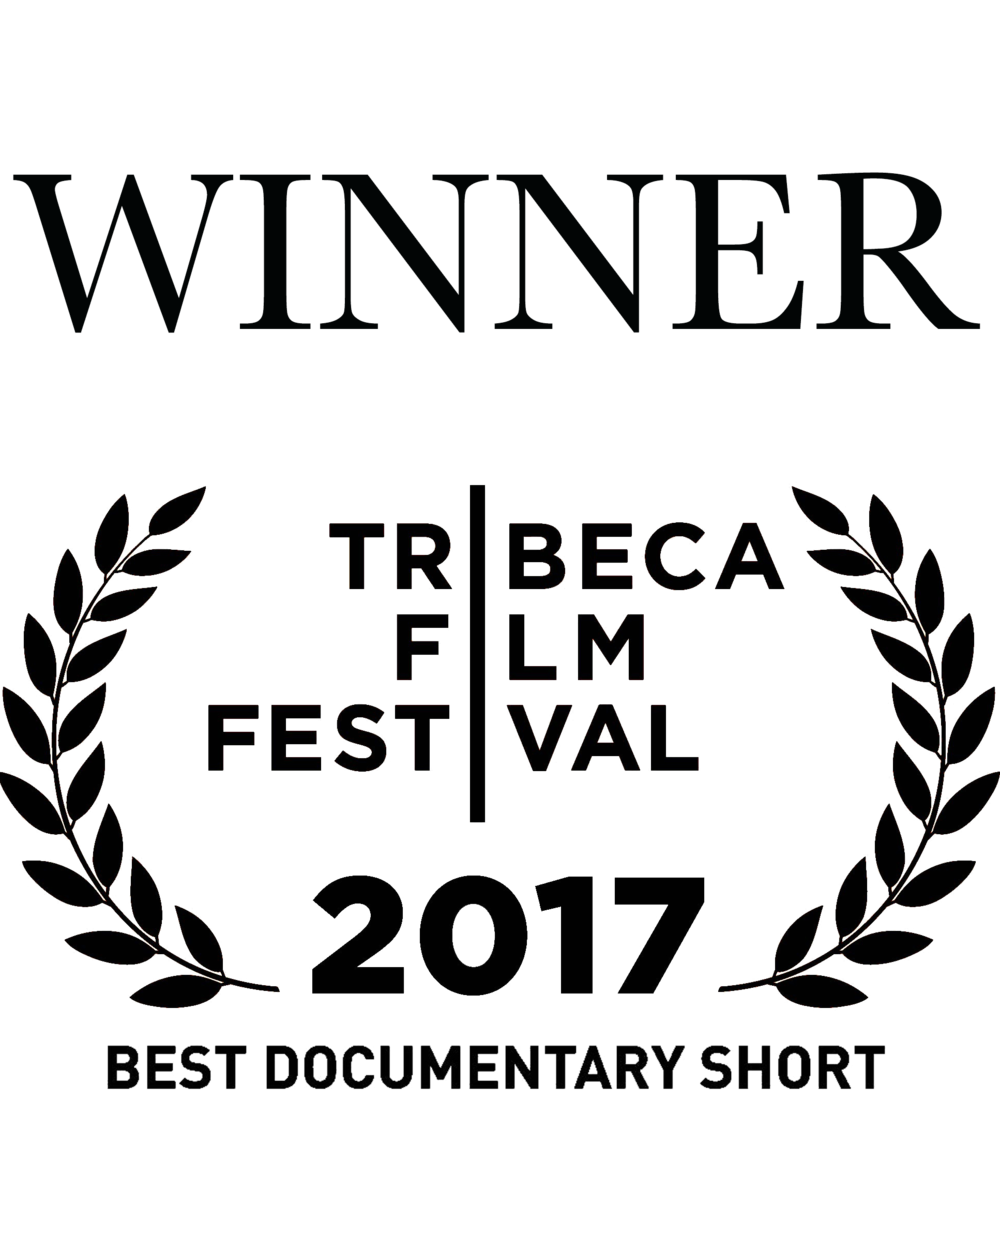 tff17_laurel_BDS black BIG WIN copy.png